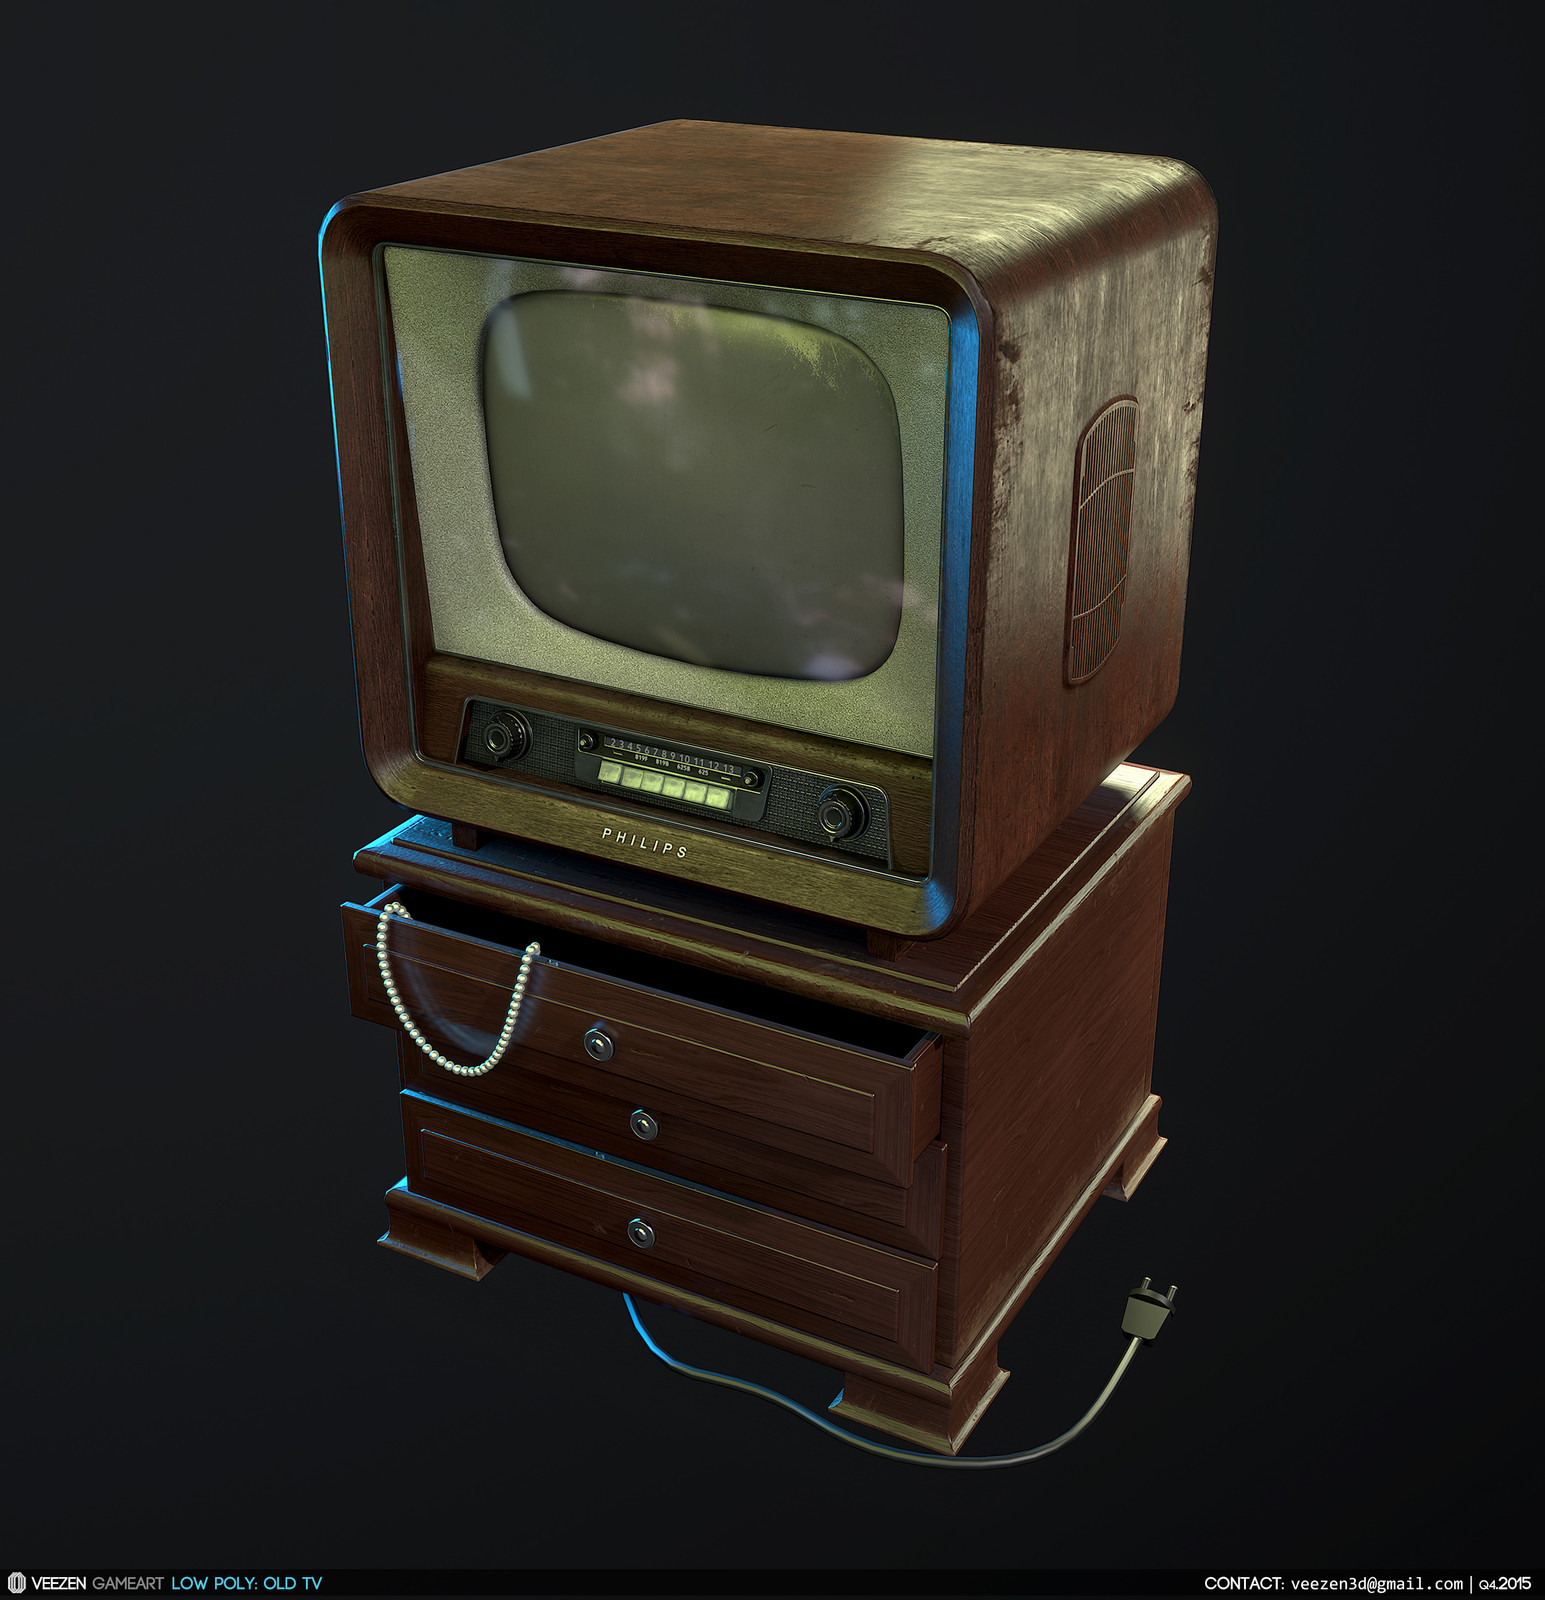 Old Philips TV Set